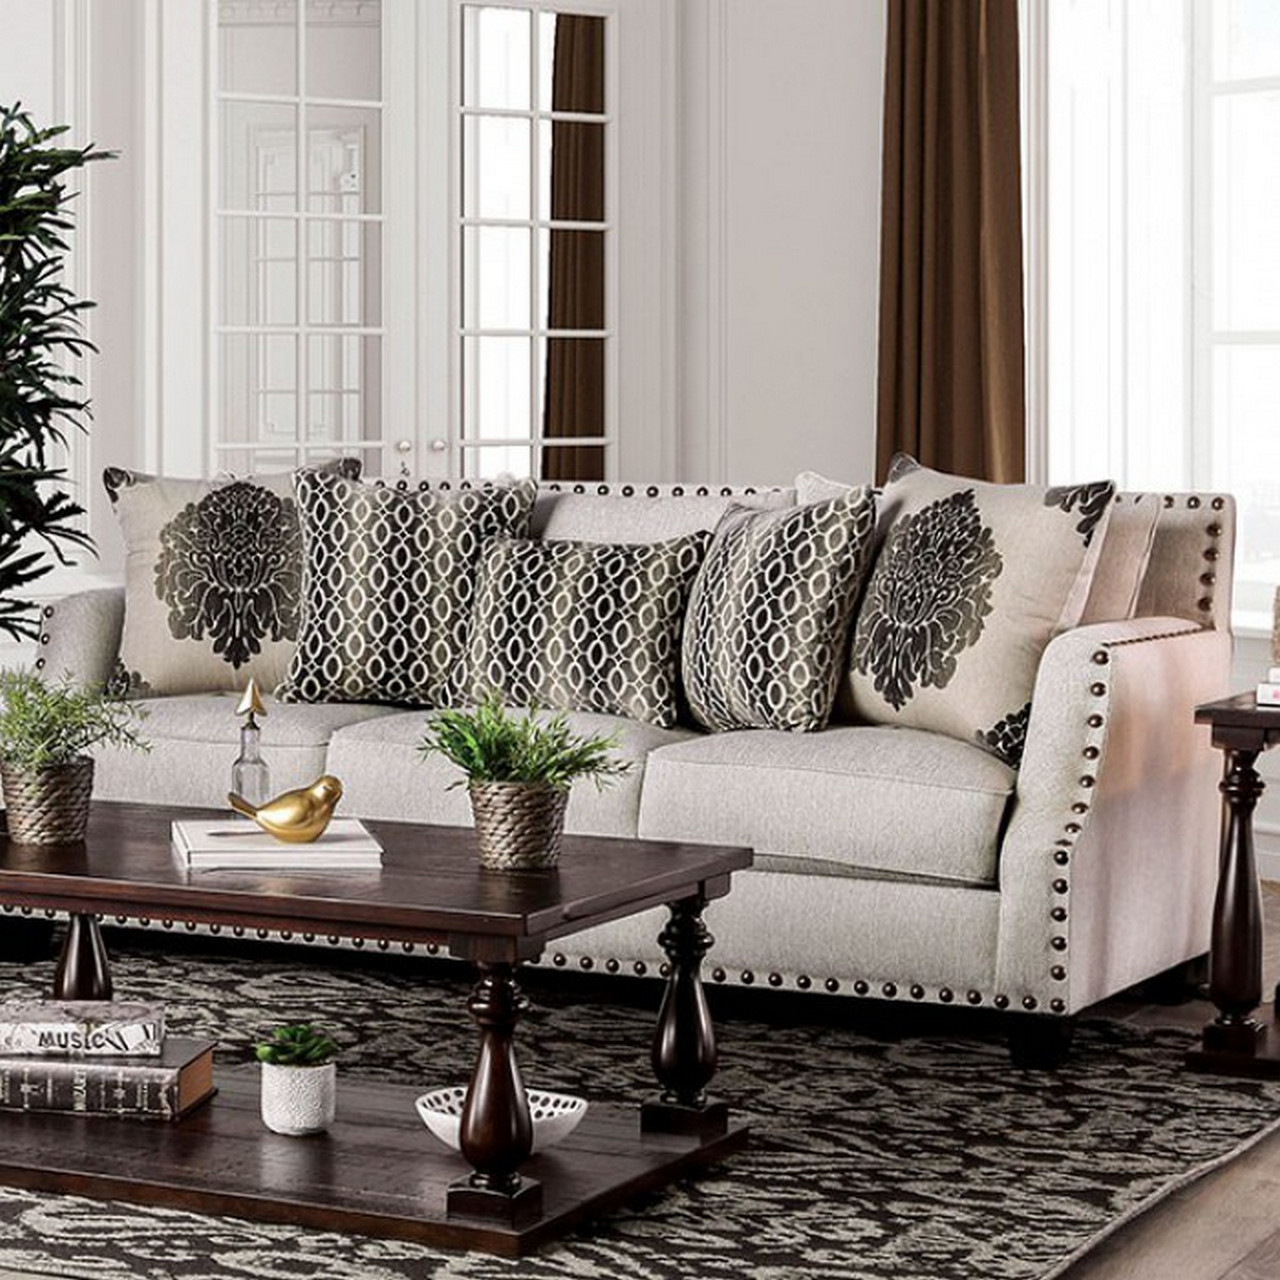 Cheapest Sofa Set: Bernadette Modern Beige Fabric Nailhead Sloped Arm Sofa